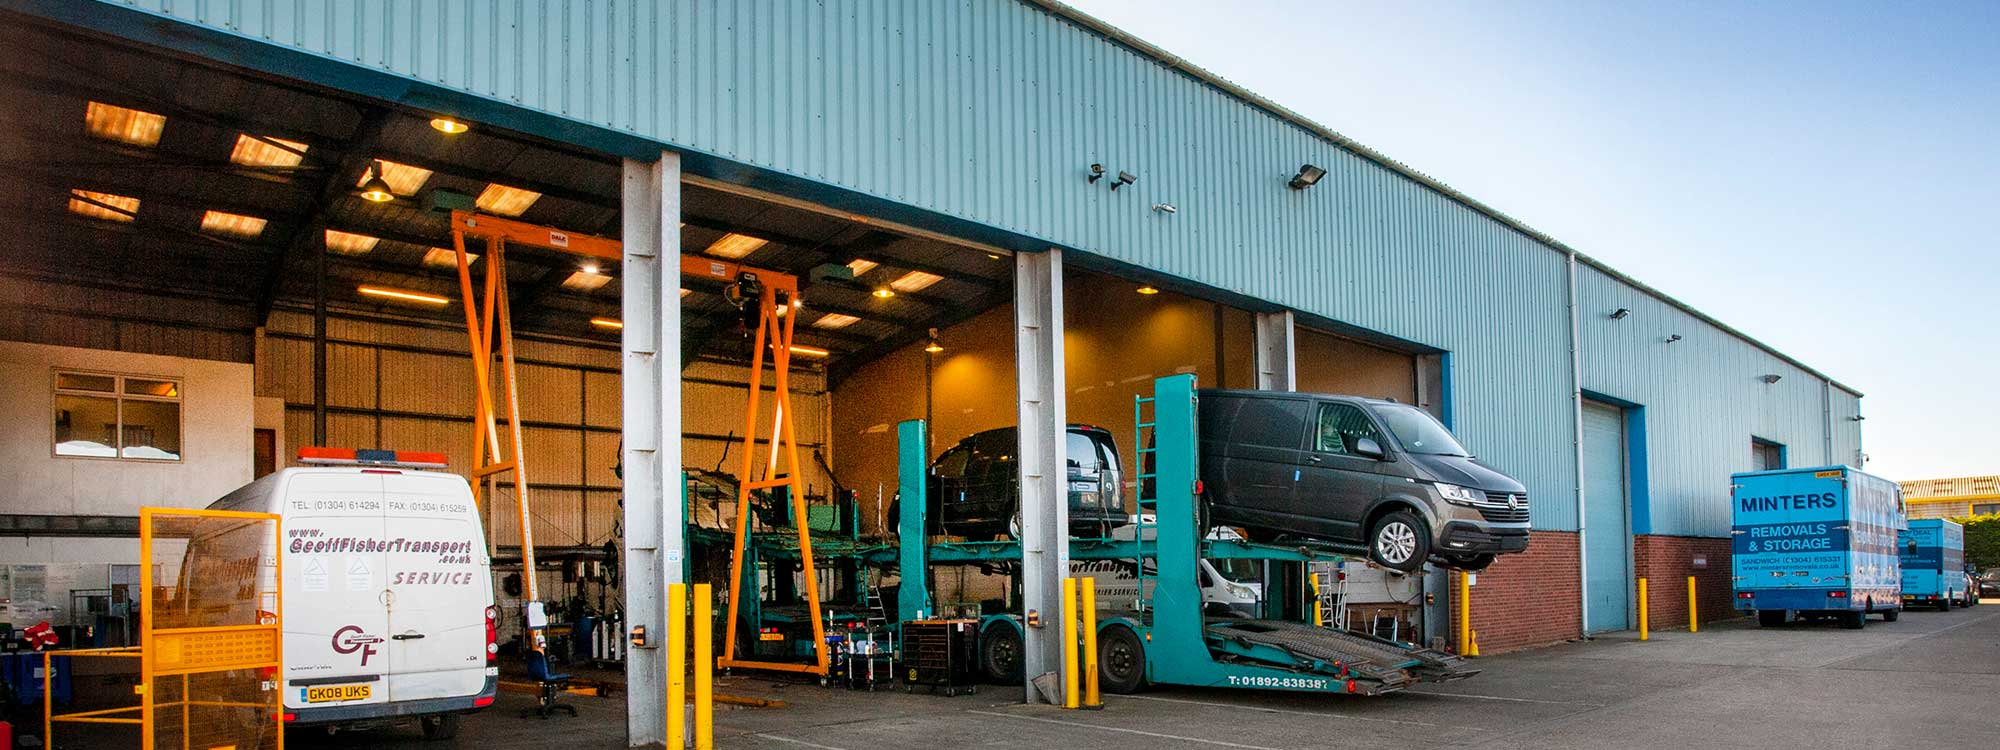 Image of the Minters of Deal vehicle storage facilities